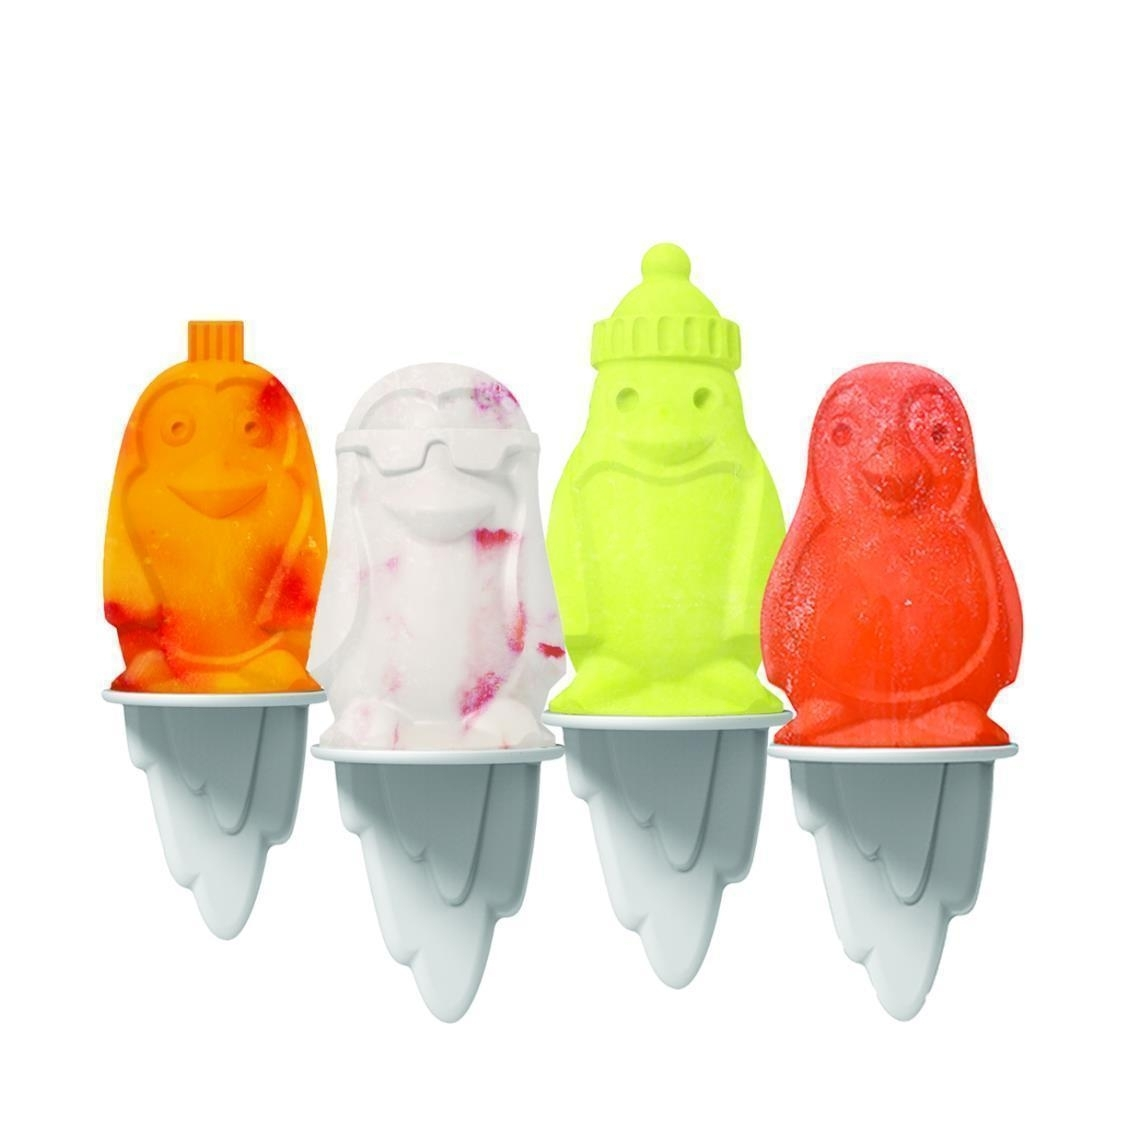 Penguin Pop Molds